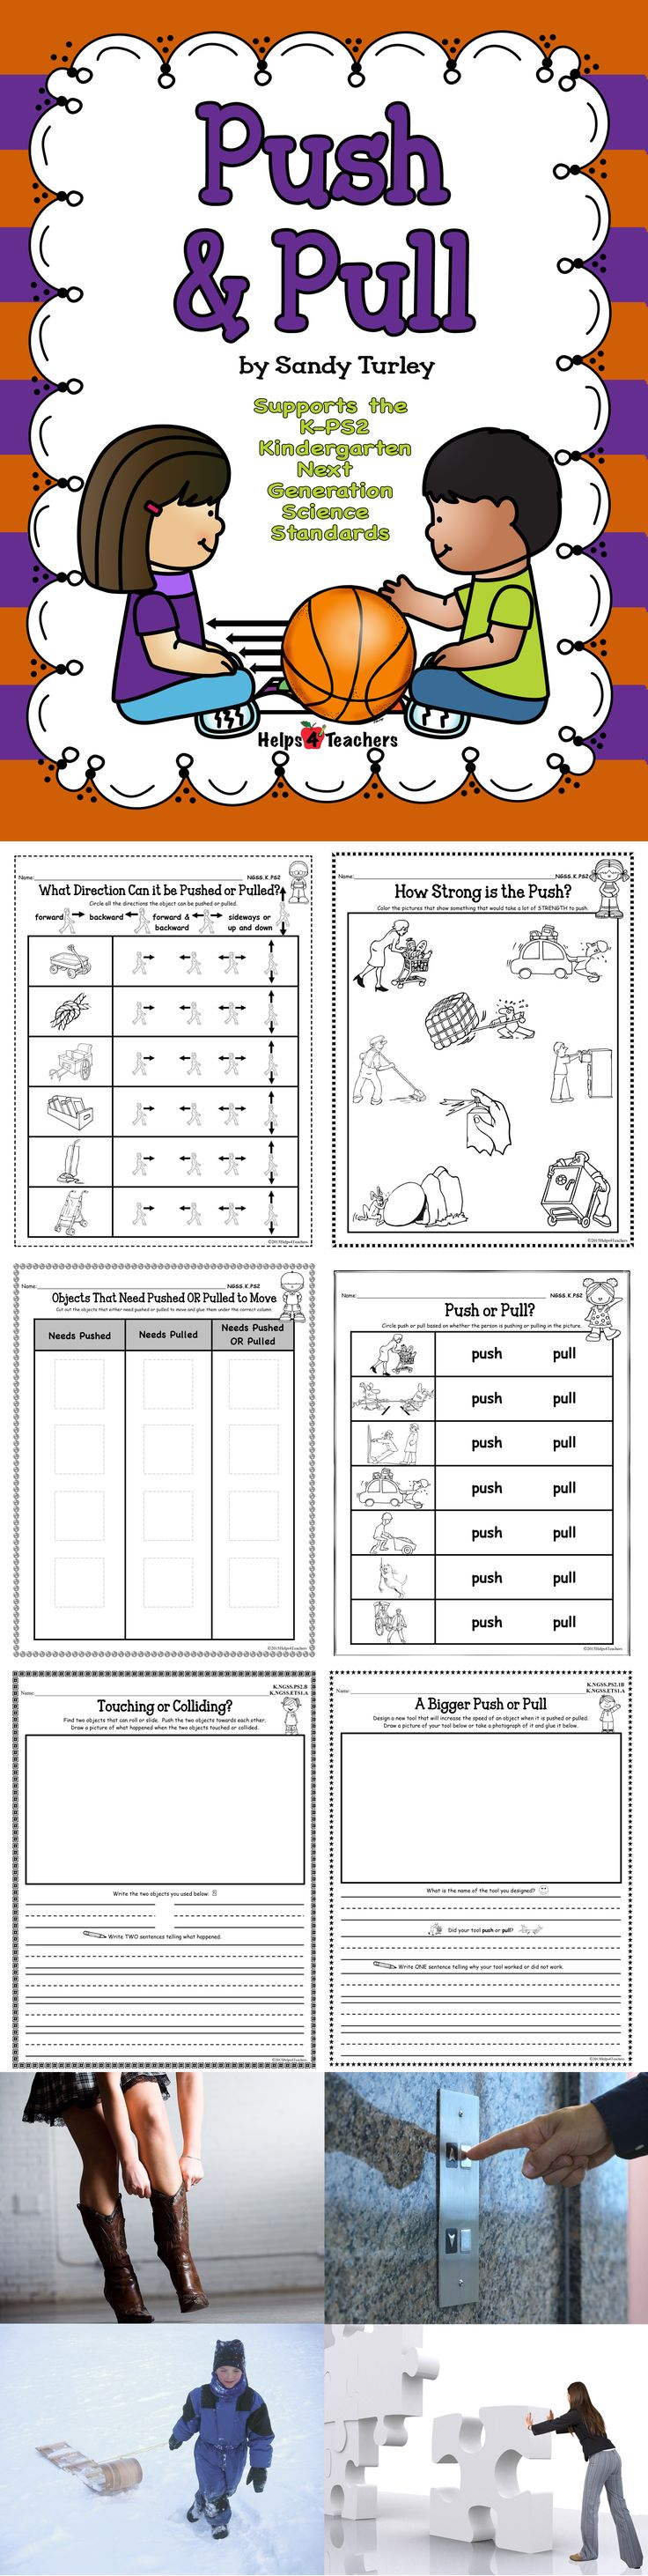 Activity sheets needed for lessons on the following Push or Pull topics: -Is it a Push or a Pull? -Strength needed to Push Things -Strength needed to Pull Things -Directions Objects Can be Pushed or Pulled - Objects that Need to be Pushed or Pulled to Move -plus large and small colored photographs to enhance your lesson.